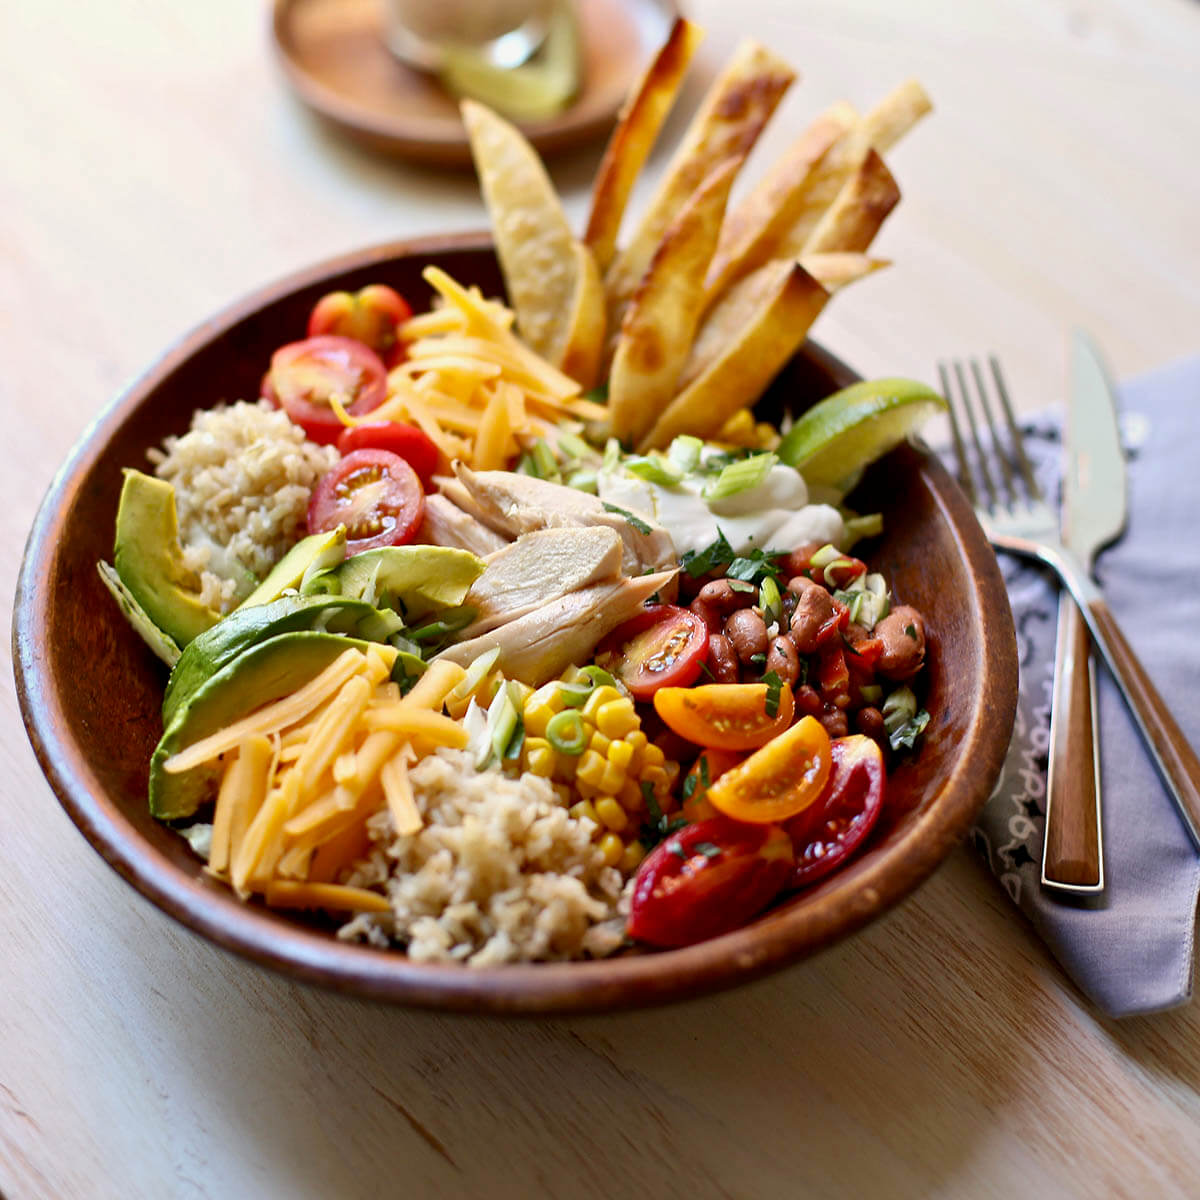 Big salad with lettuce, rice, chicken, cheese and tortilla strips in bowl.